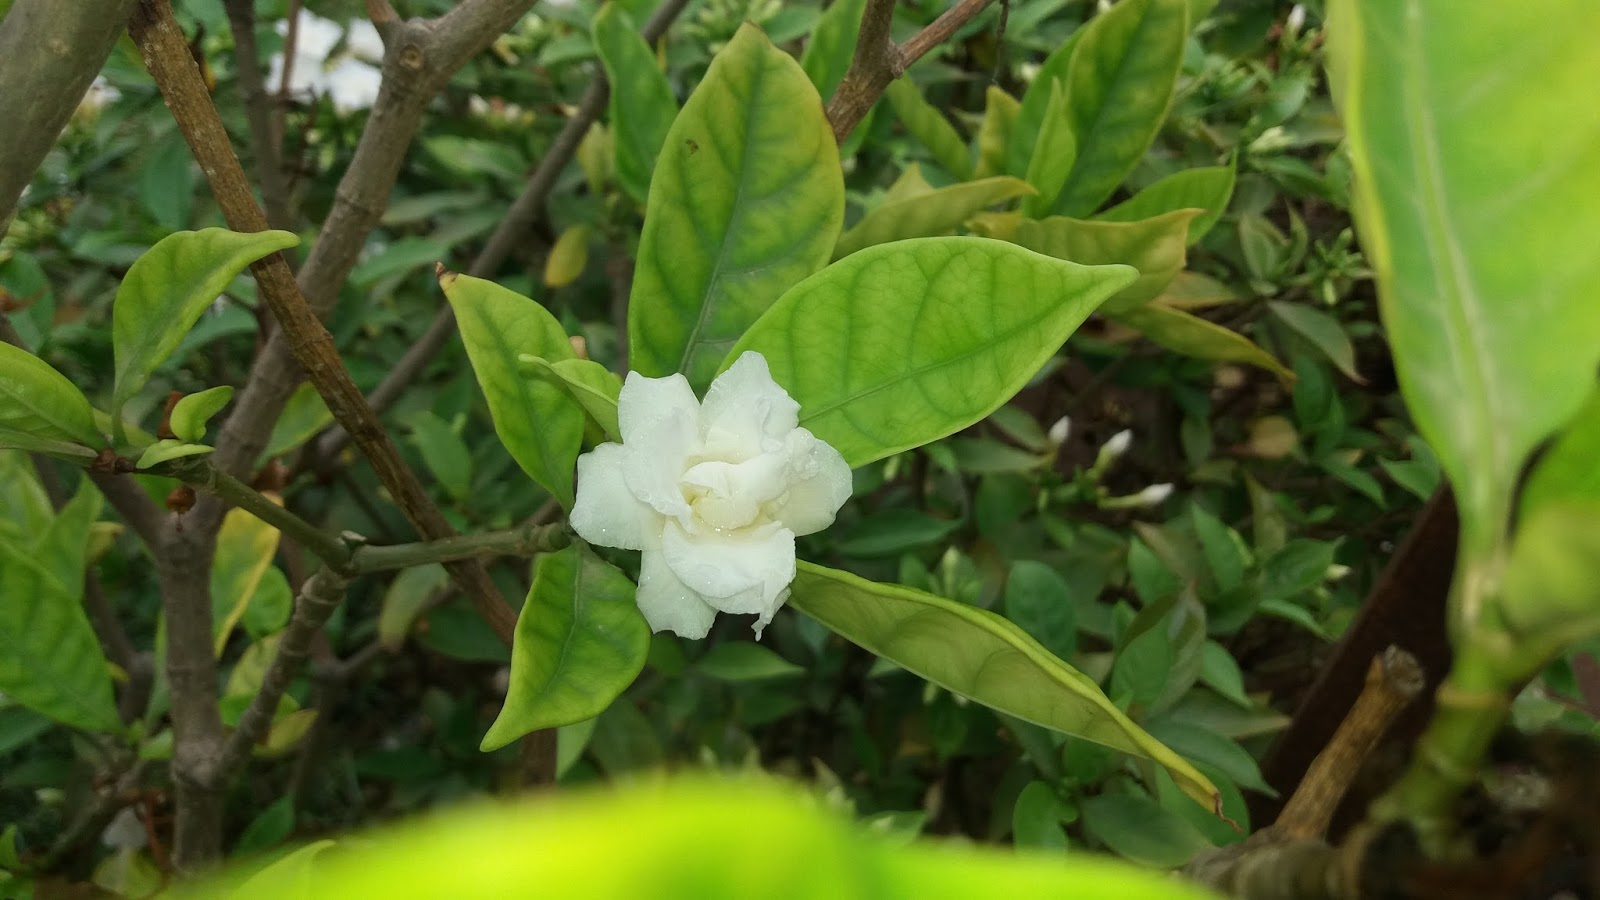 Natural photo bhavesh gadhavi bhavesh photography picbester animal blossom white flower with a shade of monsoon mightylinksfo